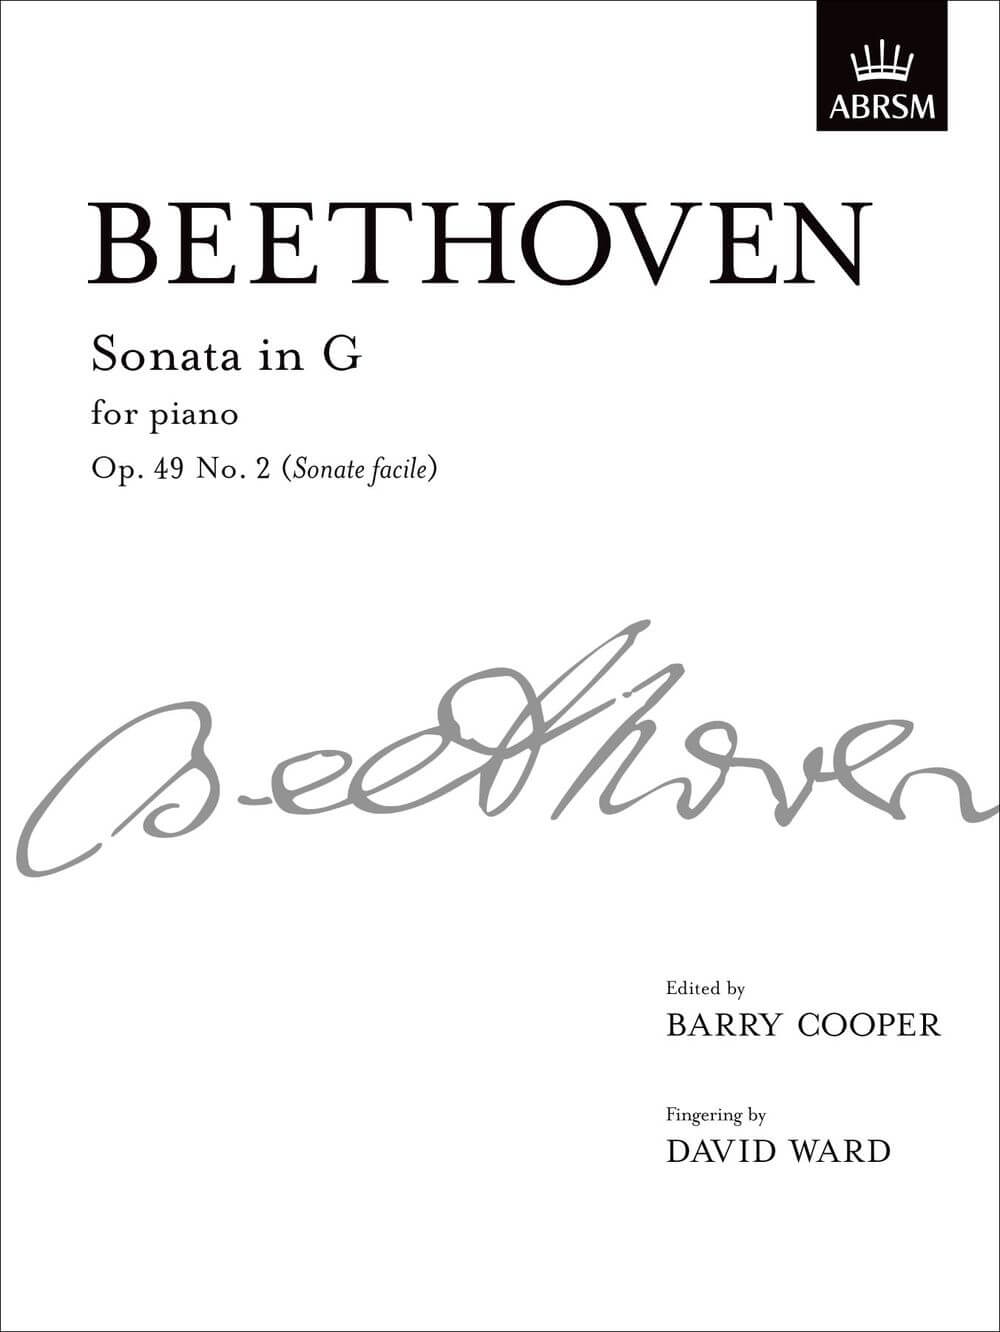 Sonata in G, Op. 49 No. 2 (Sonate facile)